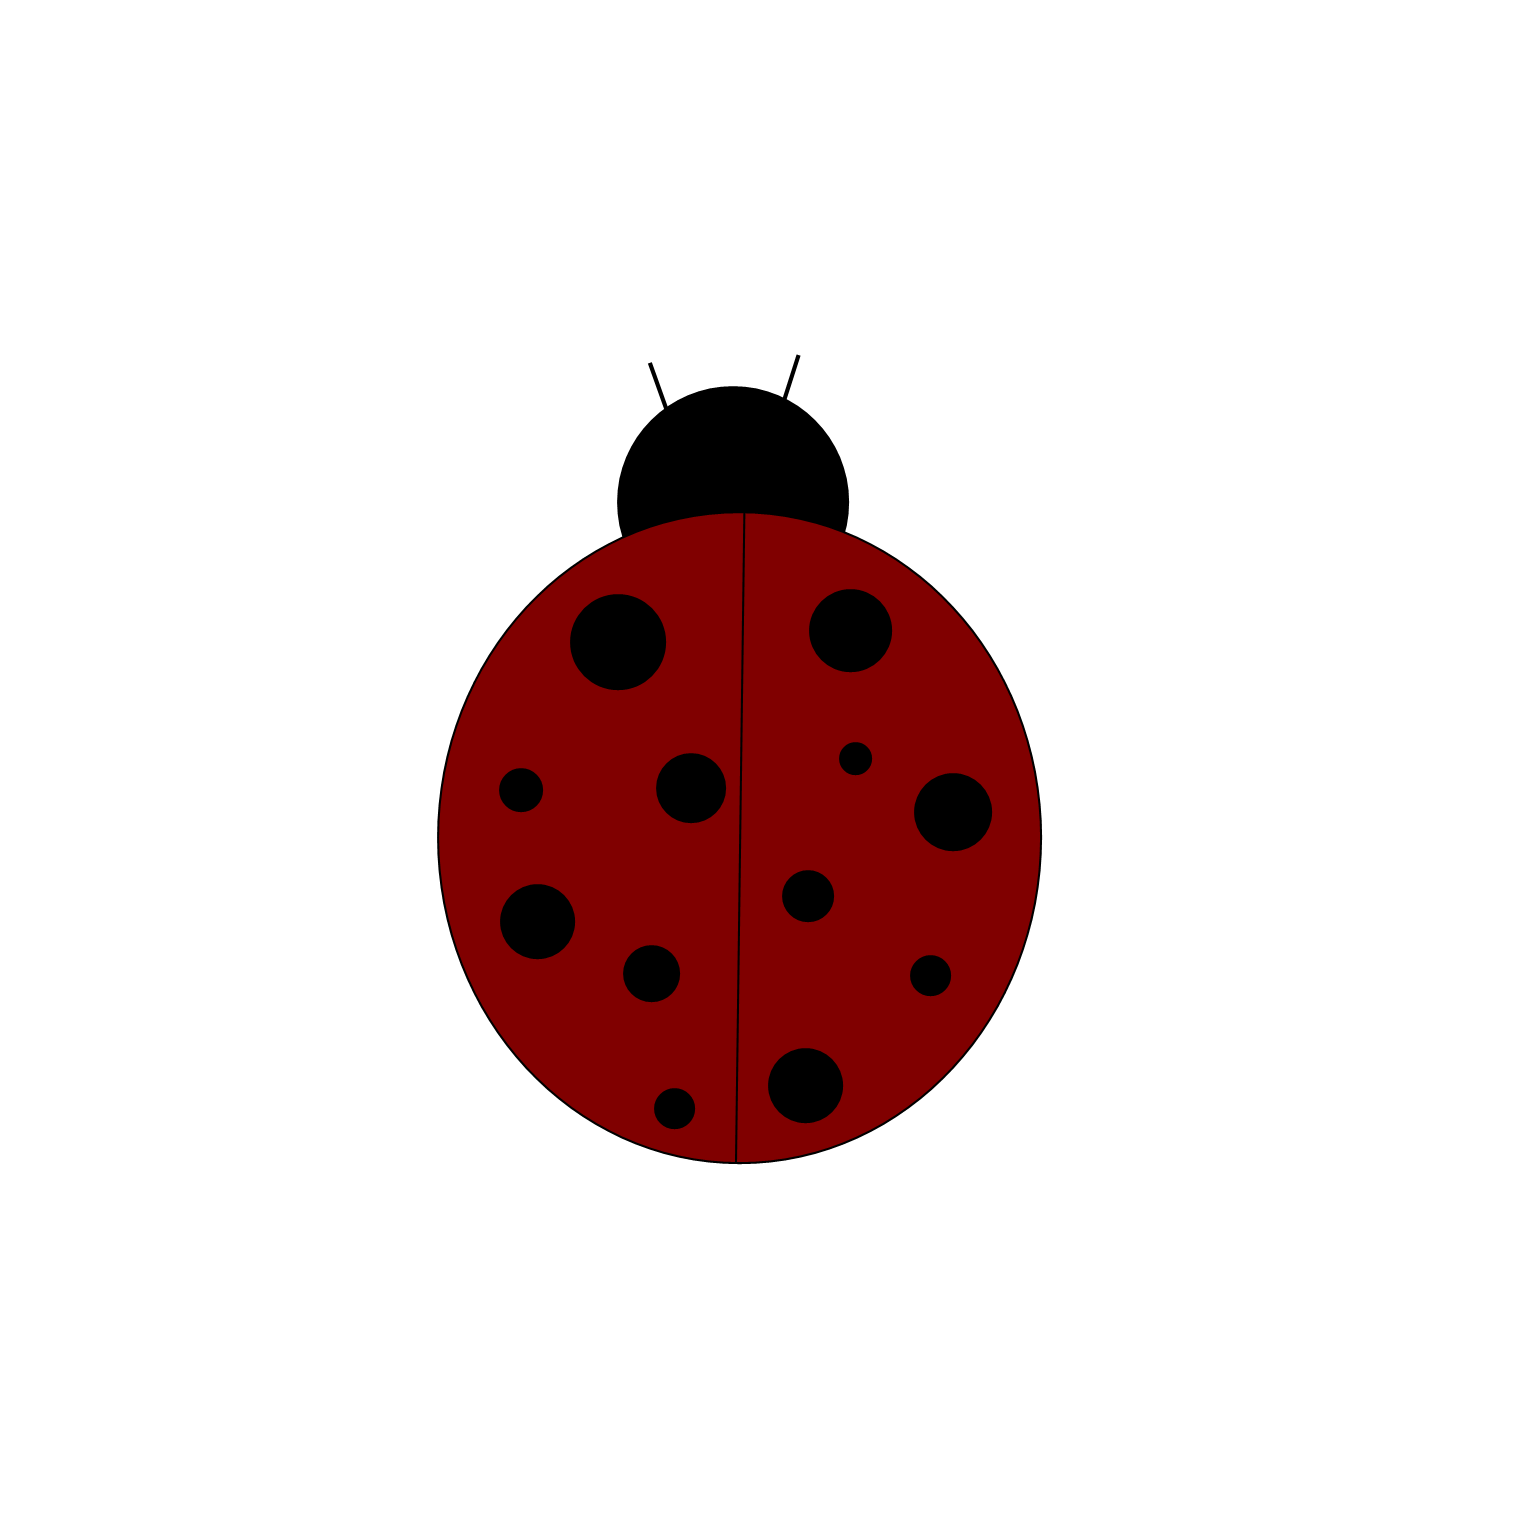 Free for invitations image. Ladybug clipart outline